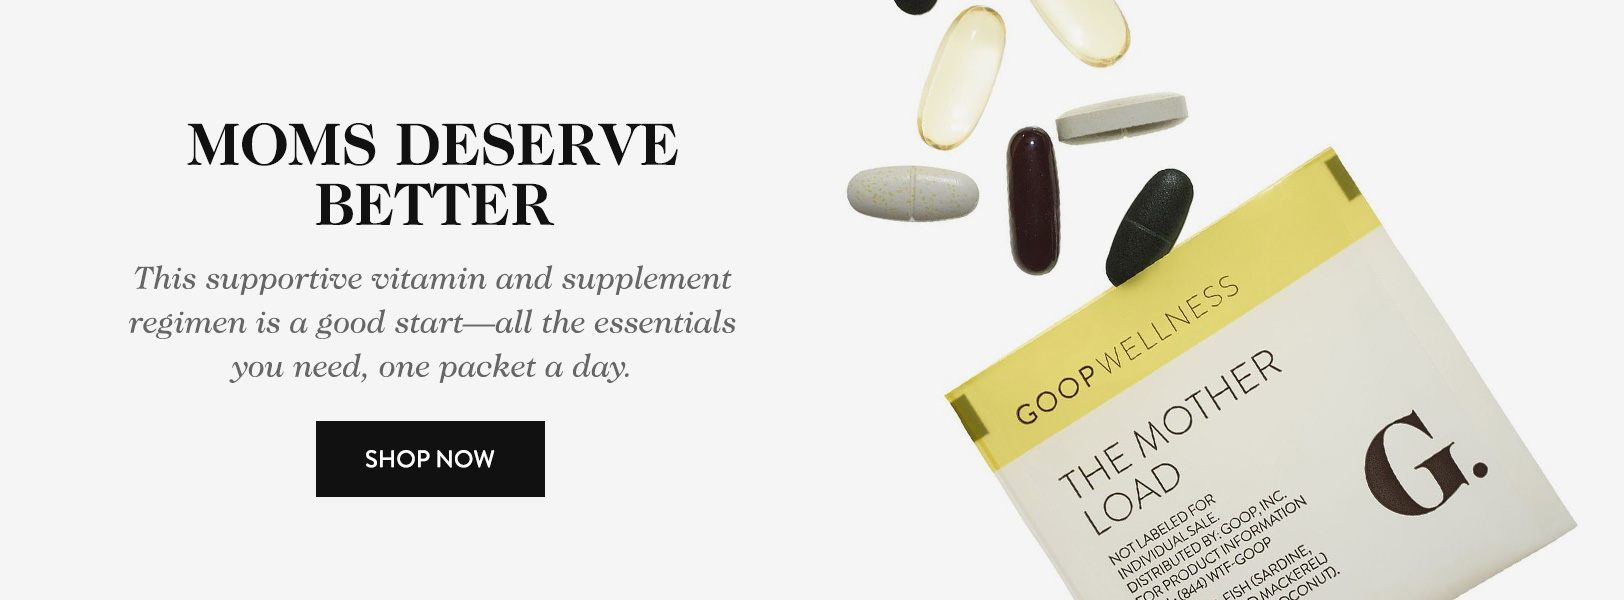 Goop's Mother Load vitamin supplement packets have always been marketed toward pregnant women or those wanting to become pregnant. (Source: goop.com)